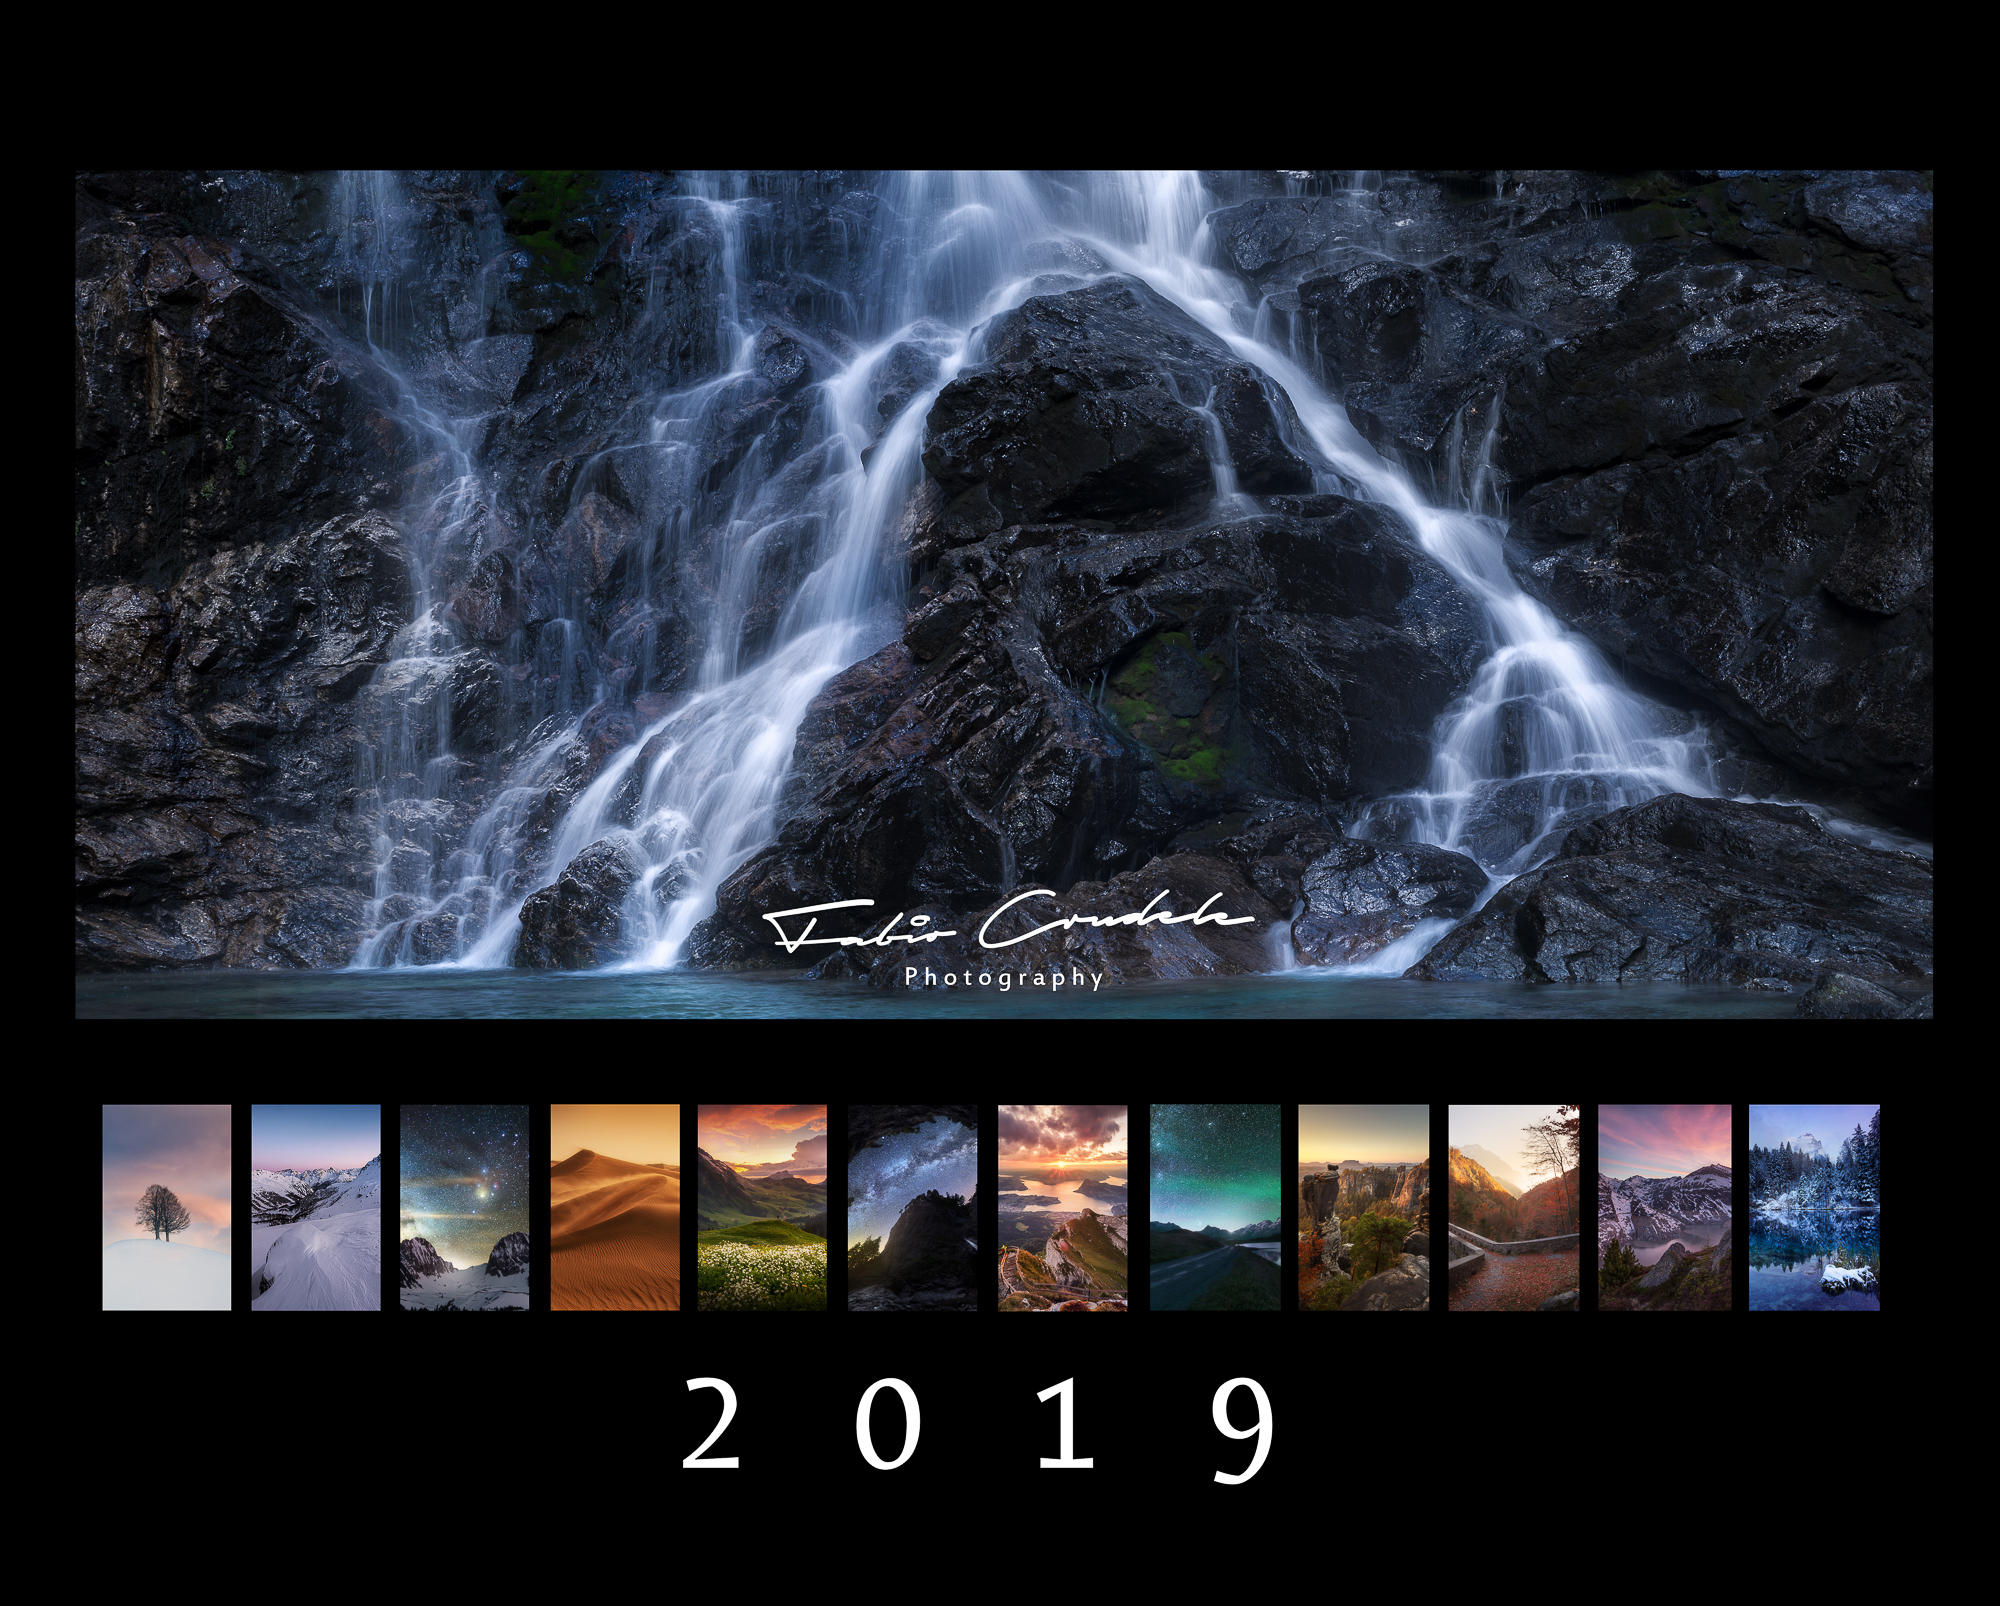 calendar 2019 querformat-landscape-milkyway-milky way